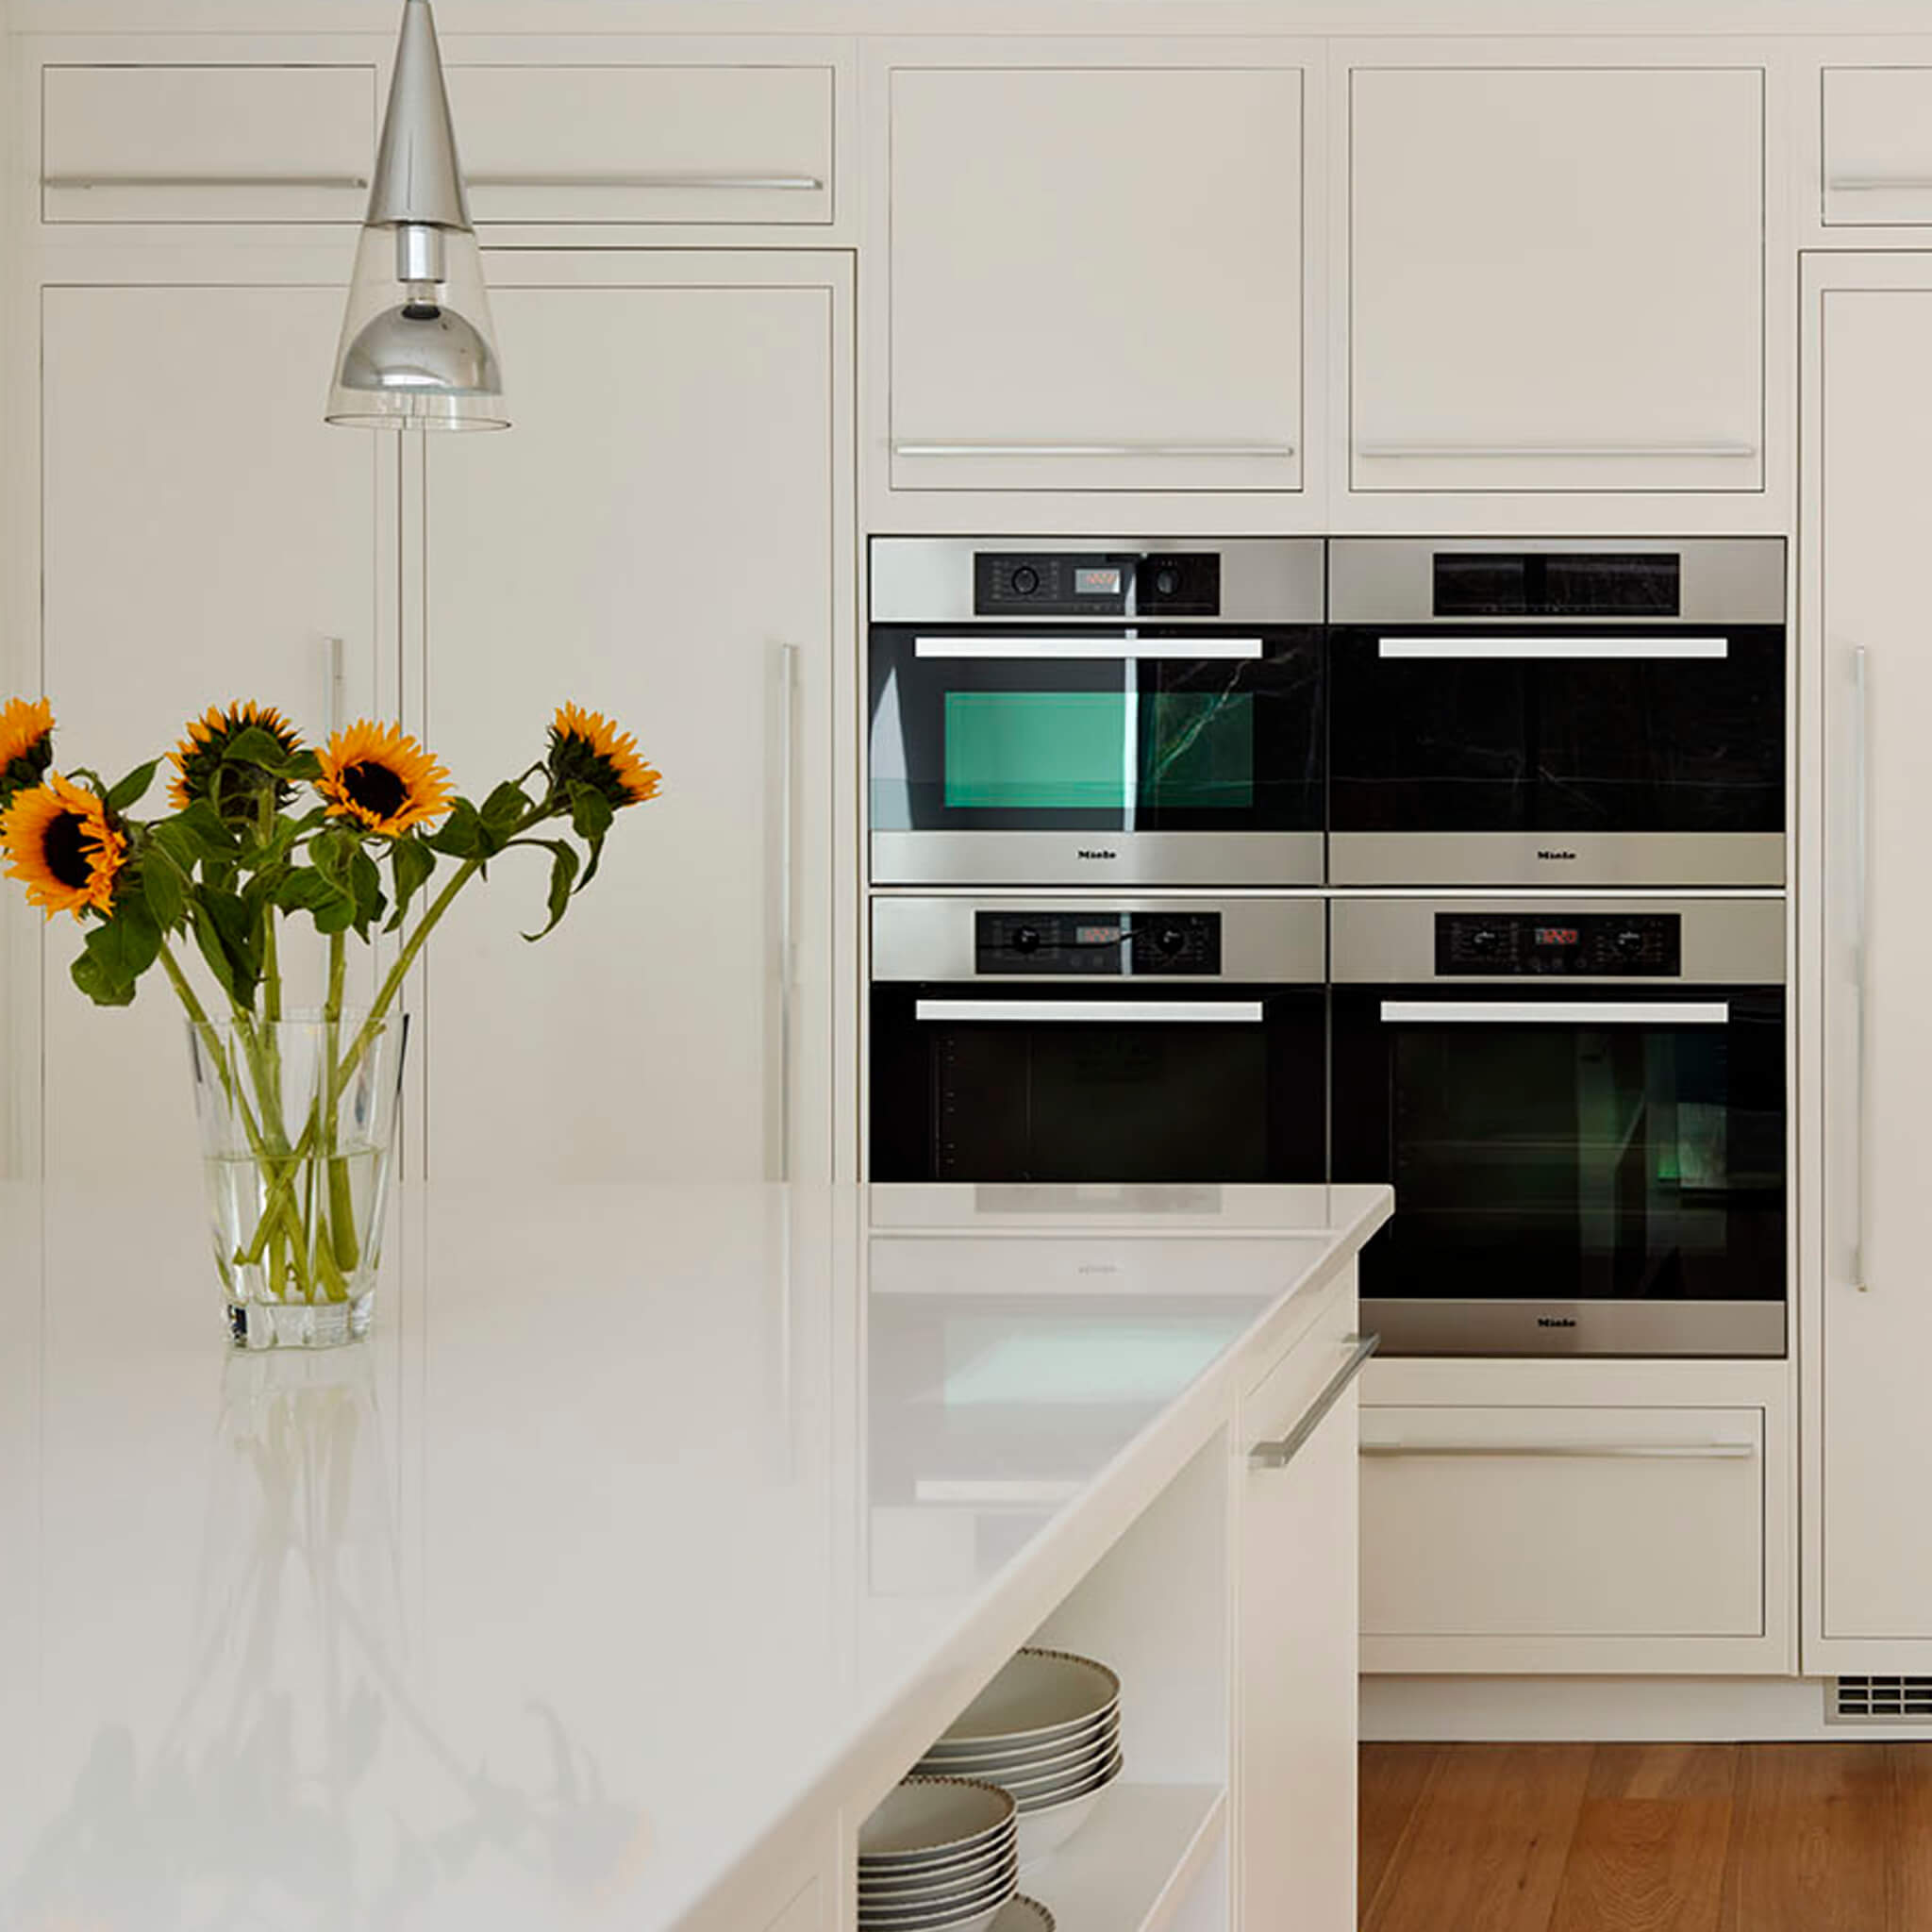 Choosing Kitchen Appliances Things To Consider